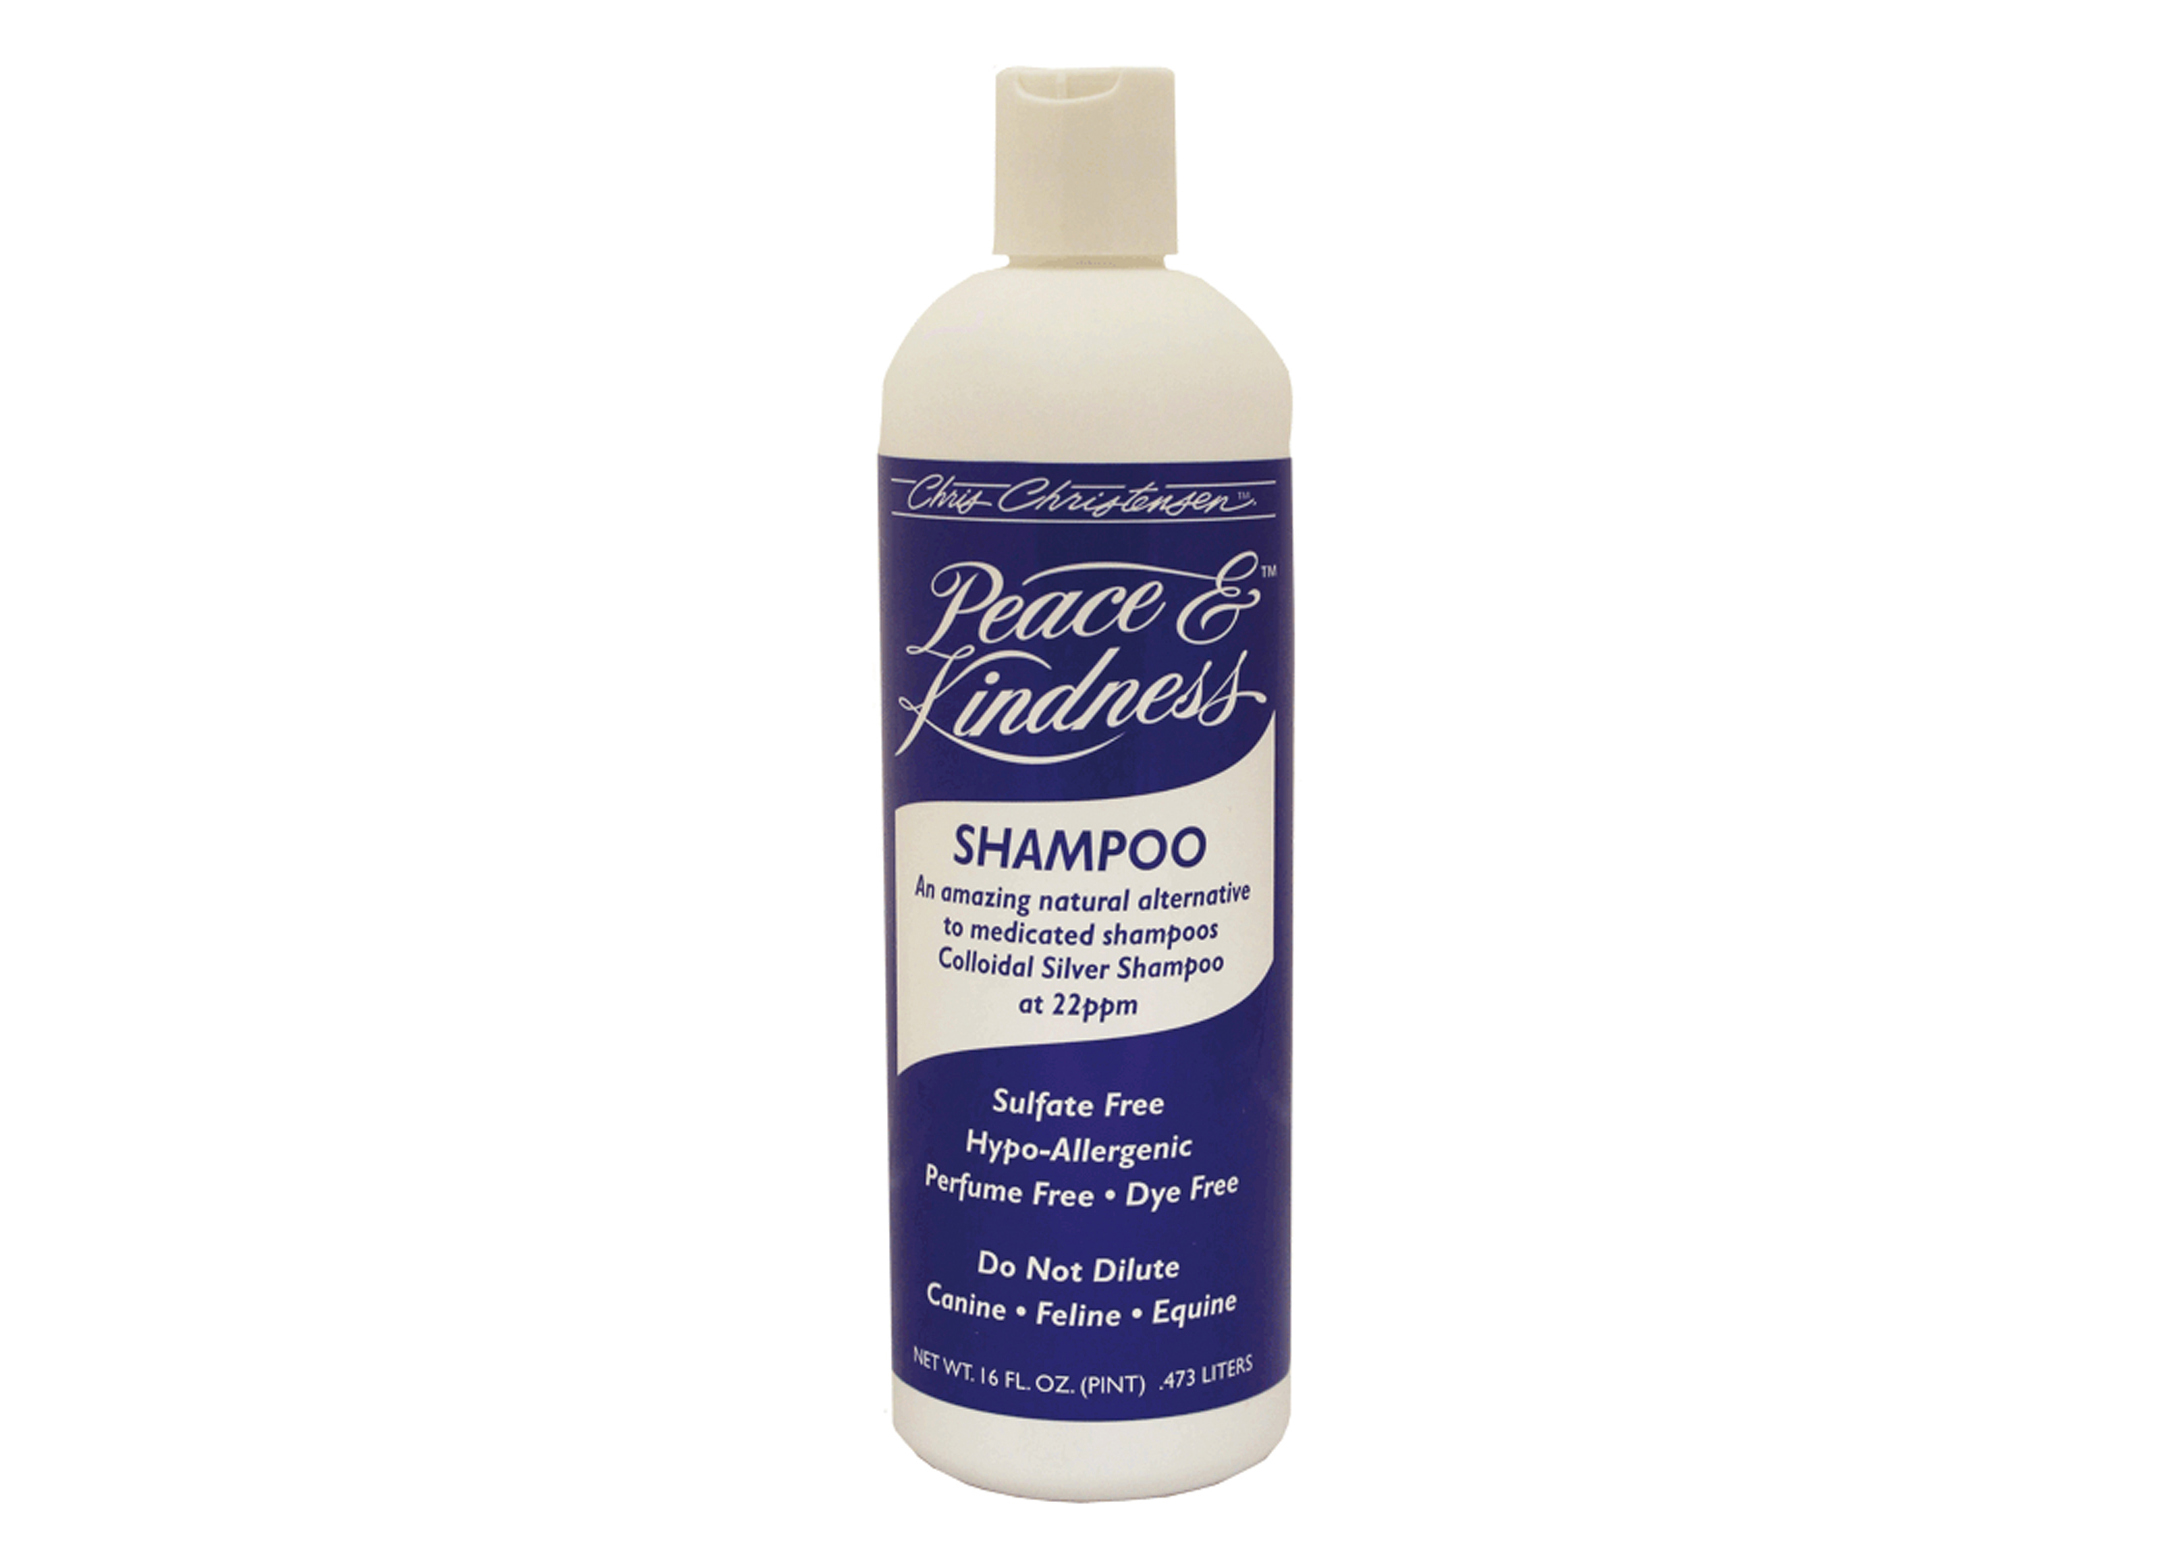 Chris Christensen Systems Peace & Kindness Colloidal Silver Shampoo